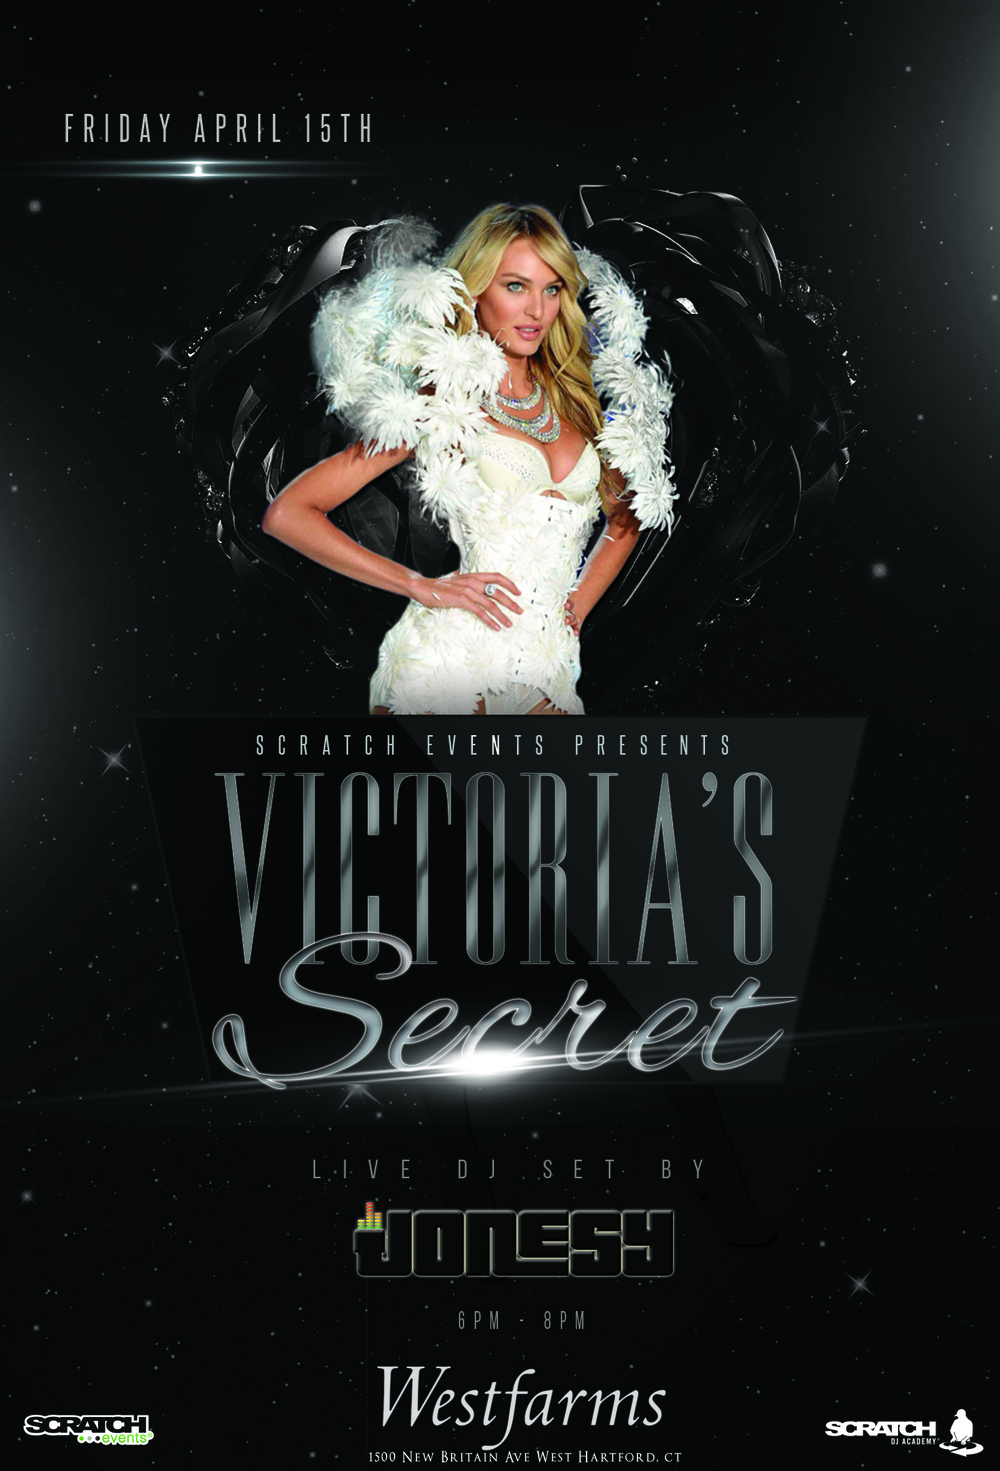 Friday, April 15th join me at Victoria's Secret @ Westfarms Mall in West Hartford, CT for music by yours truly 6-8pm.  Shopping deals throughout the event!  Presented by Victoria's Secret + Scratch Events.